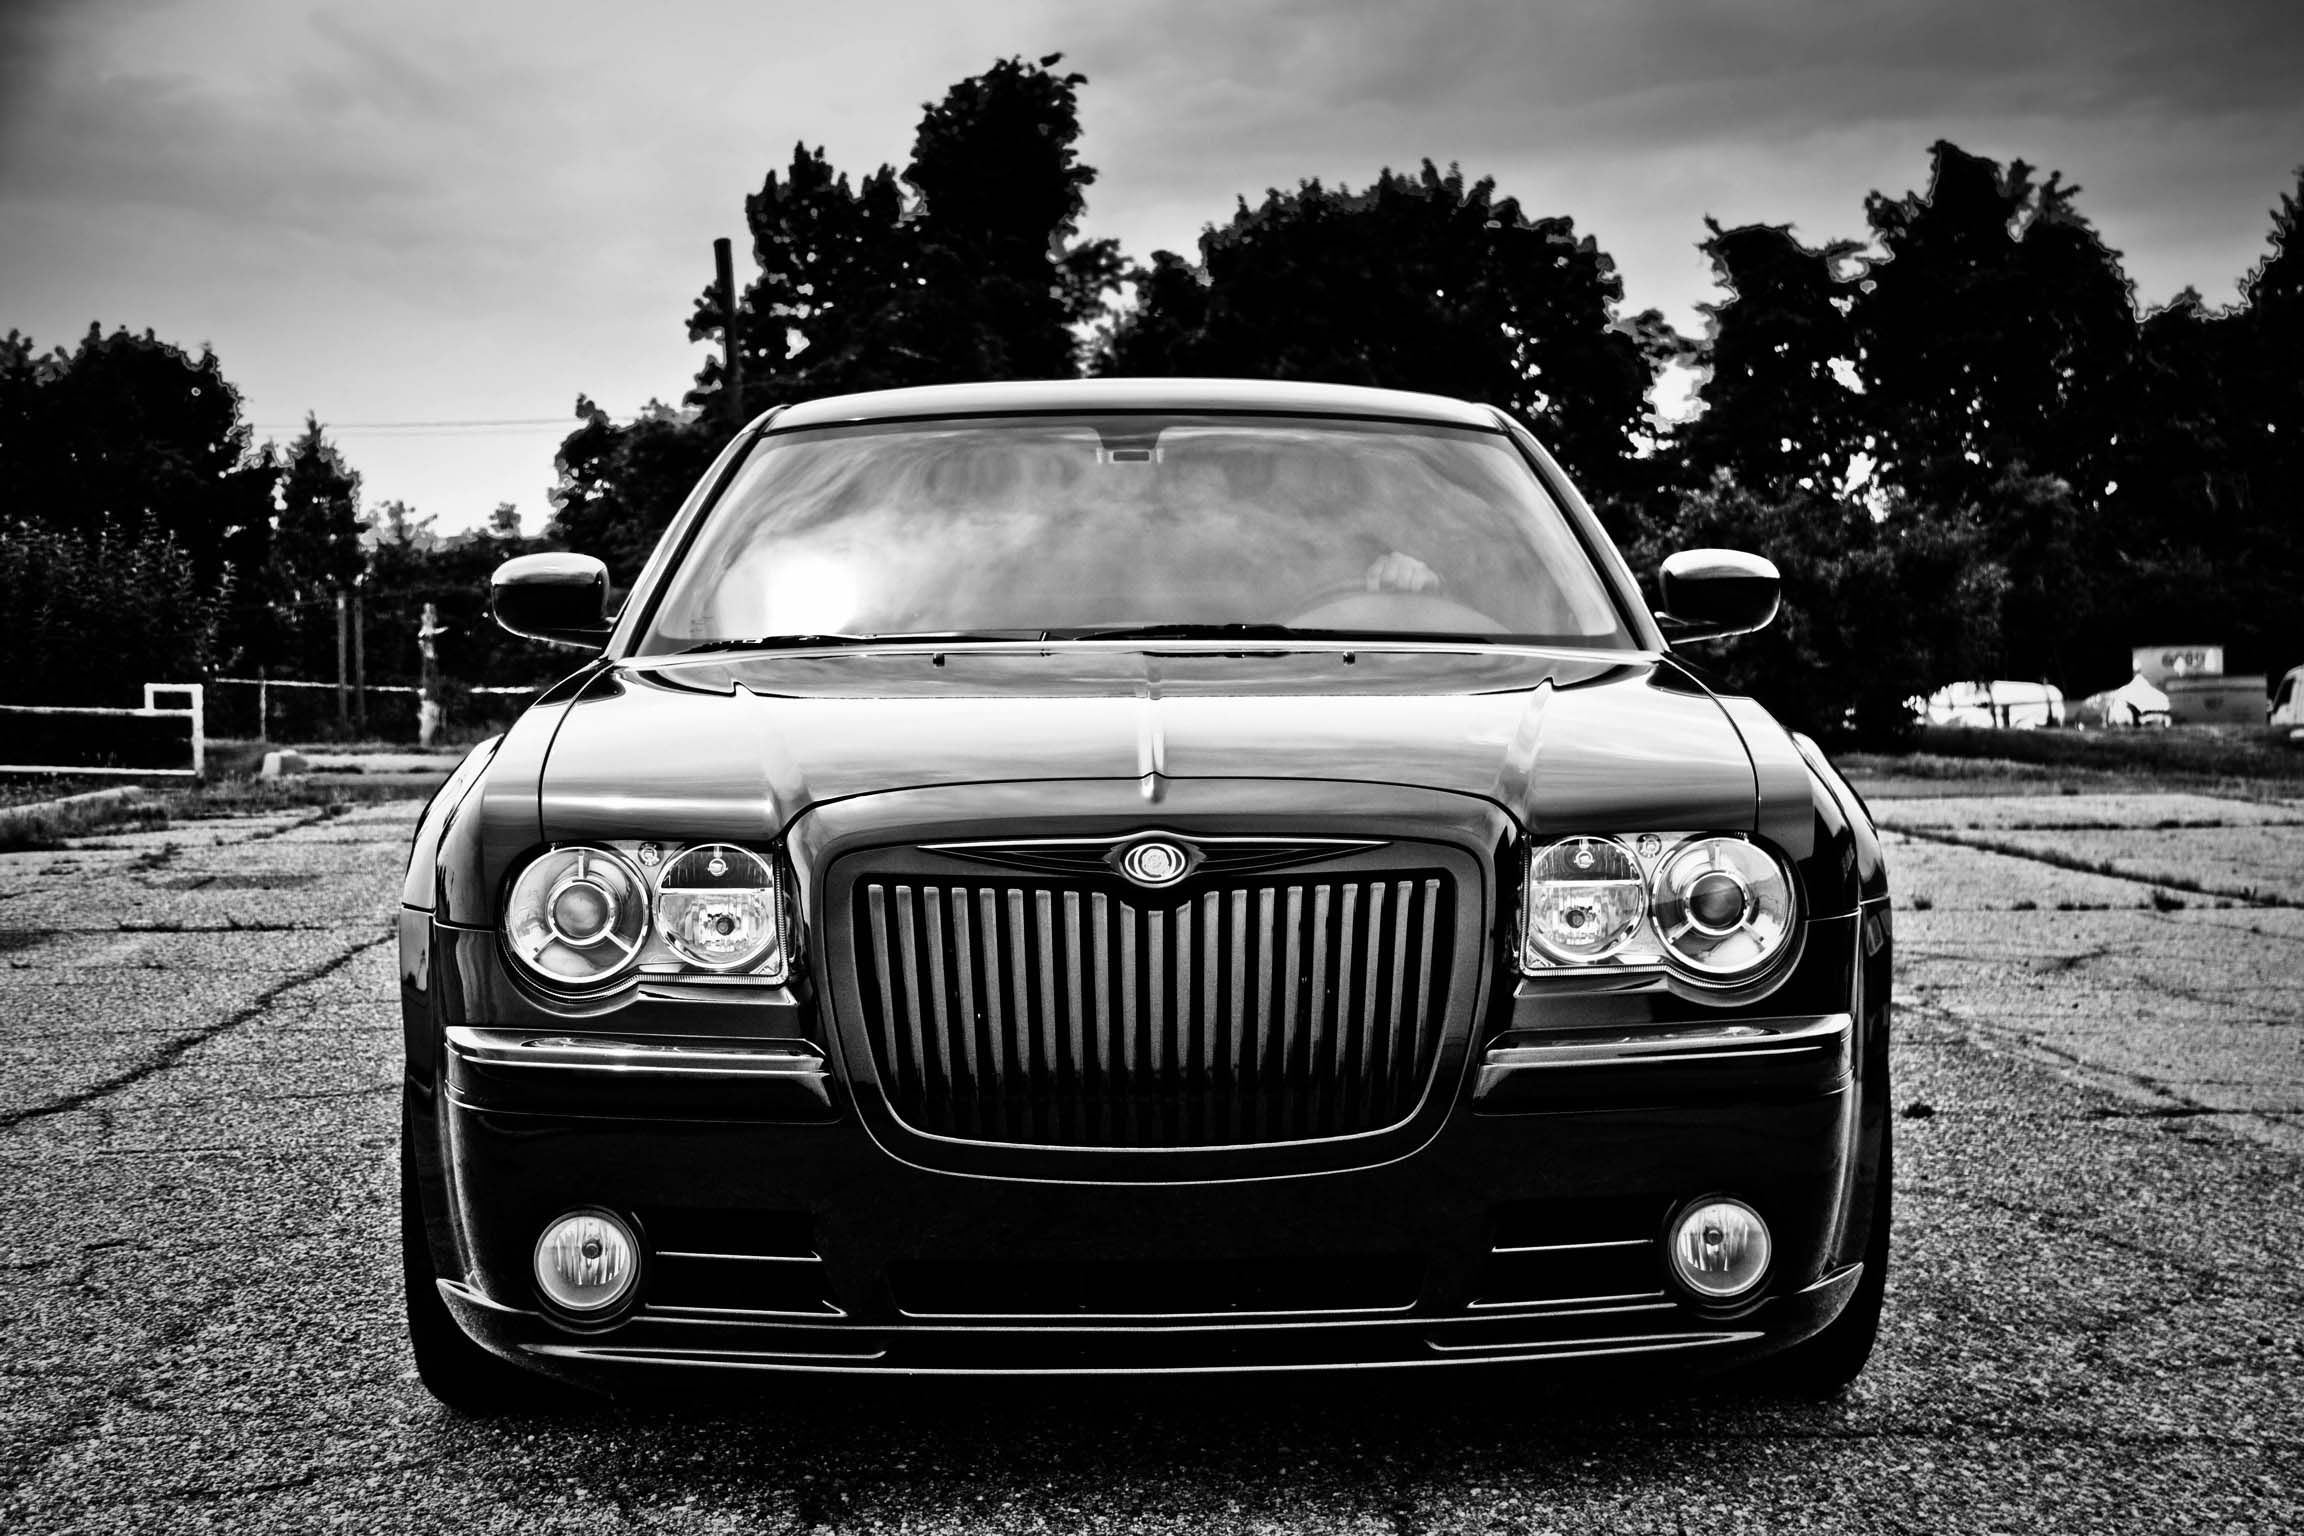 chrysler 300c srt8 black on black 6 2l 425 hp wheeled automatons pinterest black. Black Bedroom Furniture Sets. Home Design Ideas